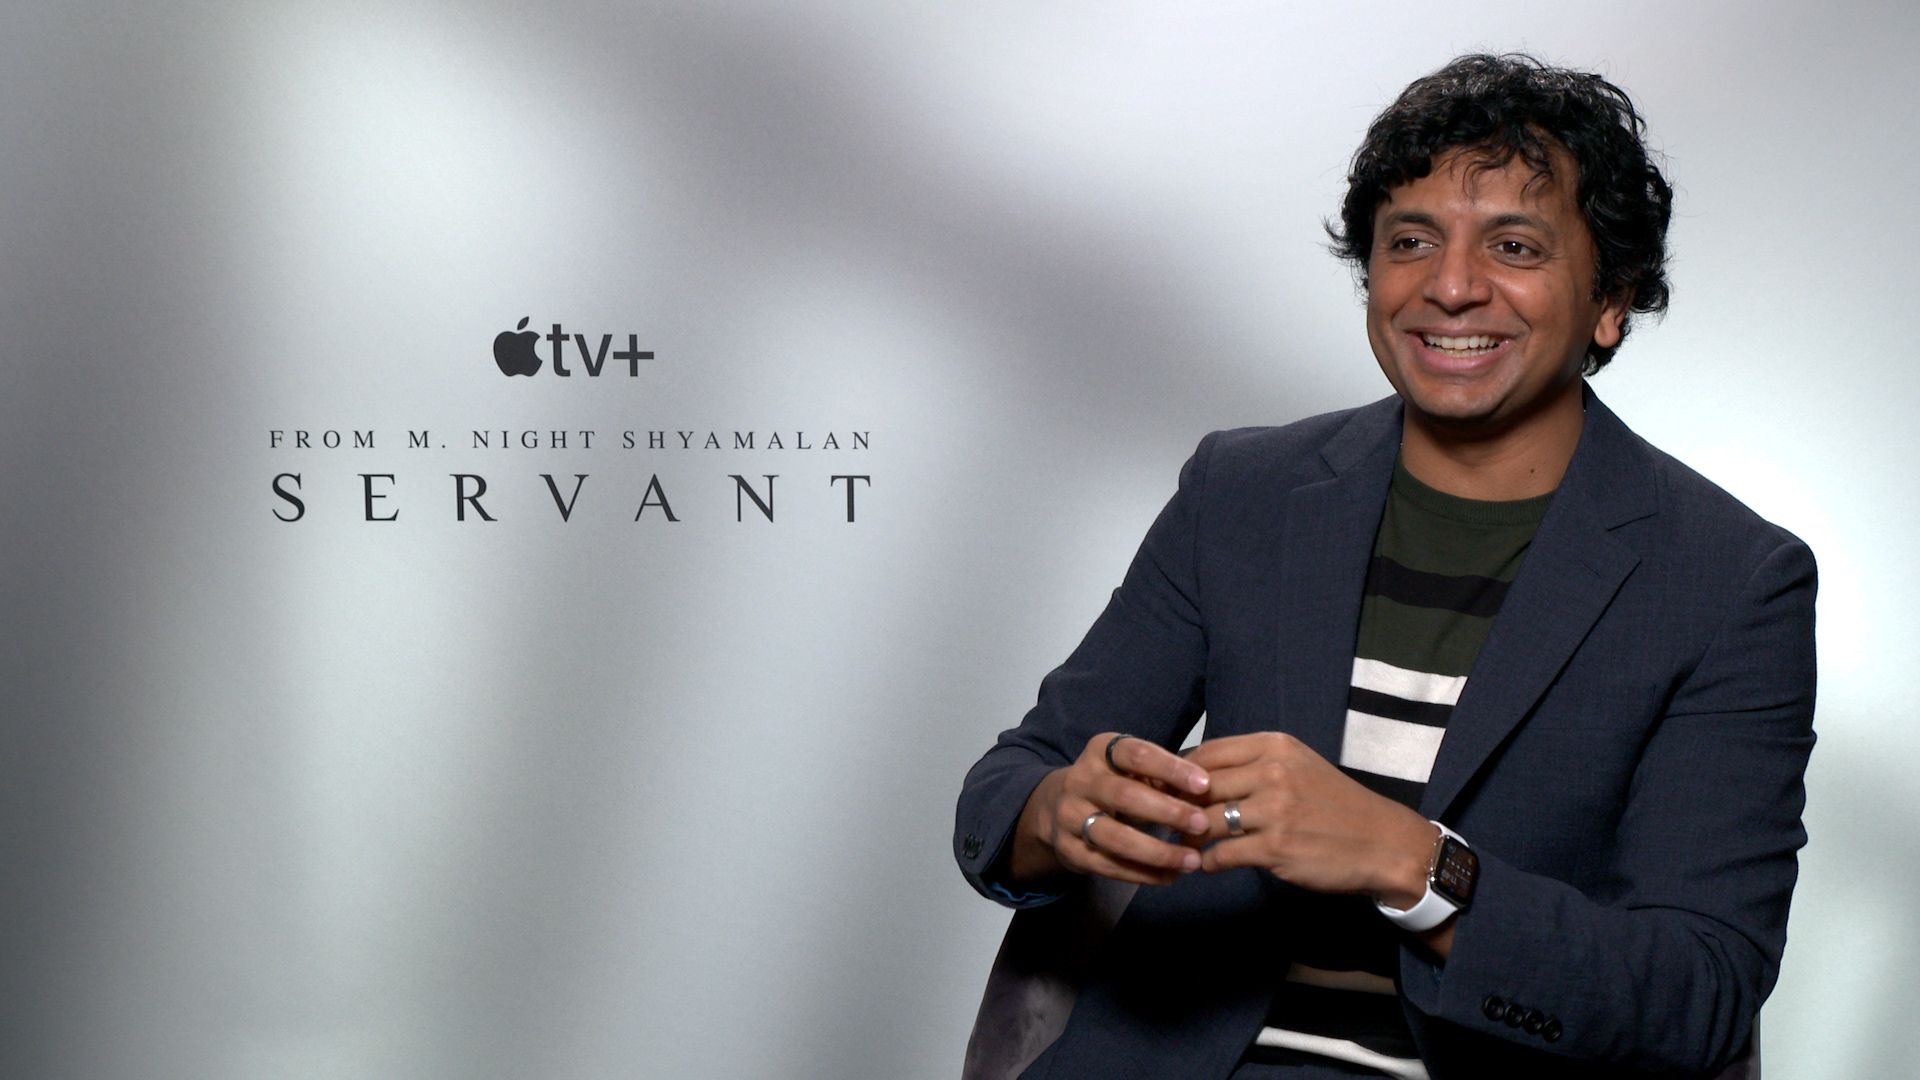 m. night shyamalan - photo #21